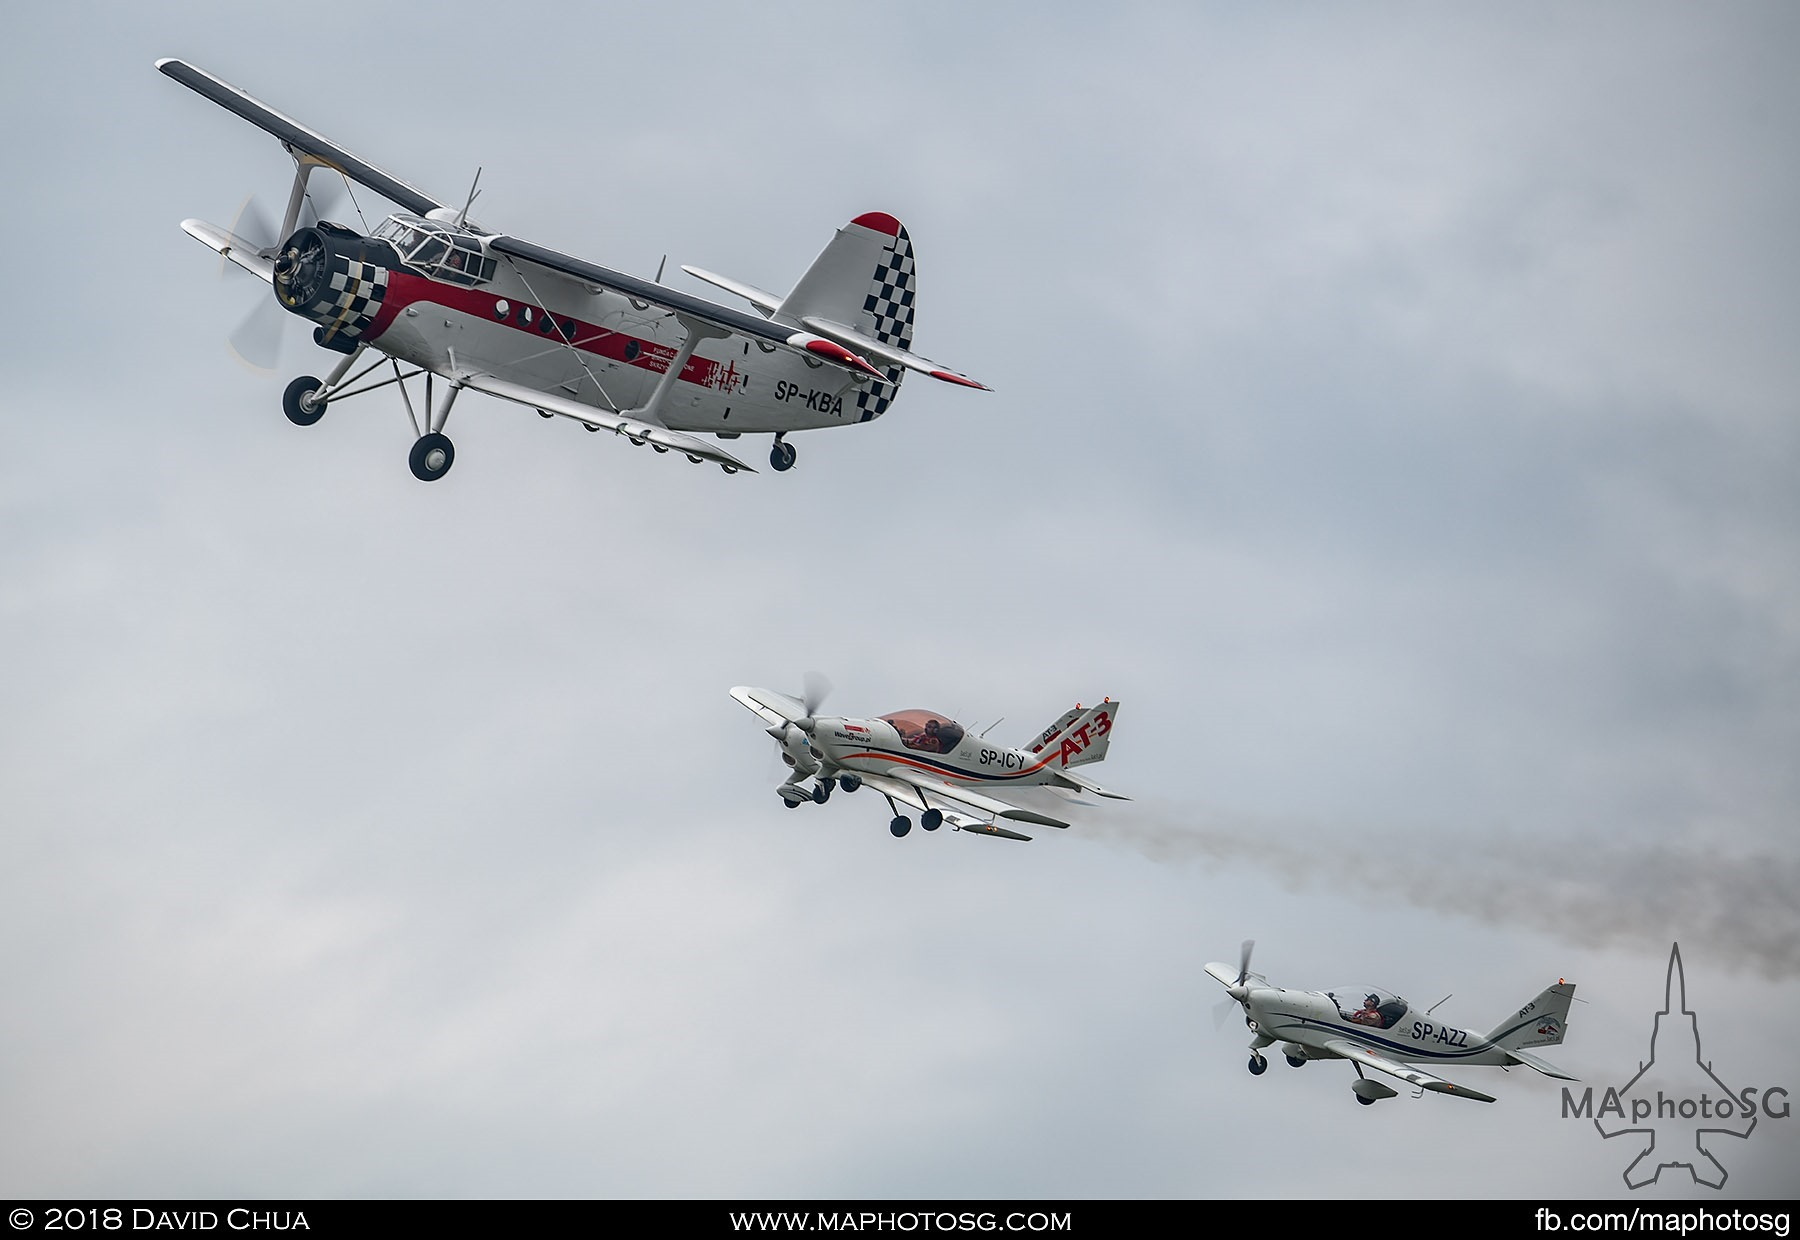 17. Fundacja Bialo Czerwone Skrzydla Antonov An-2 and AT-3s in formation